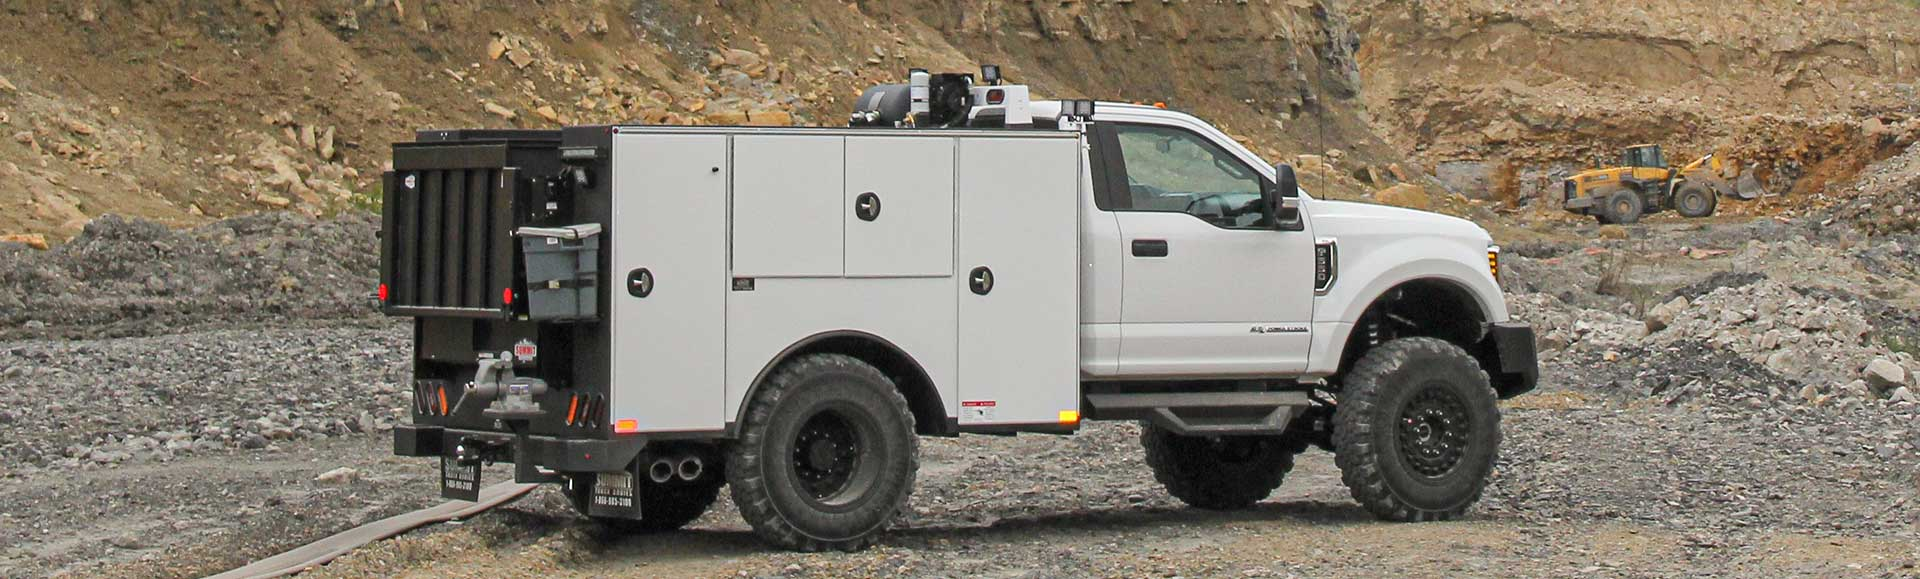 Summit-Truck_UNDERHOOD40_Quarry